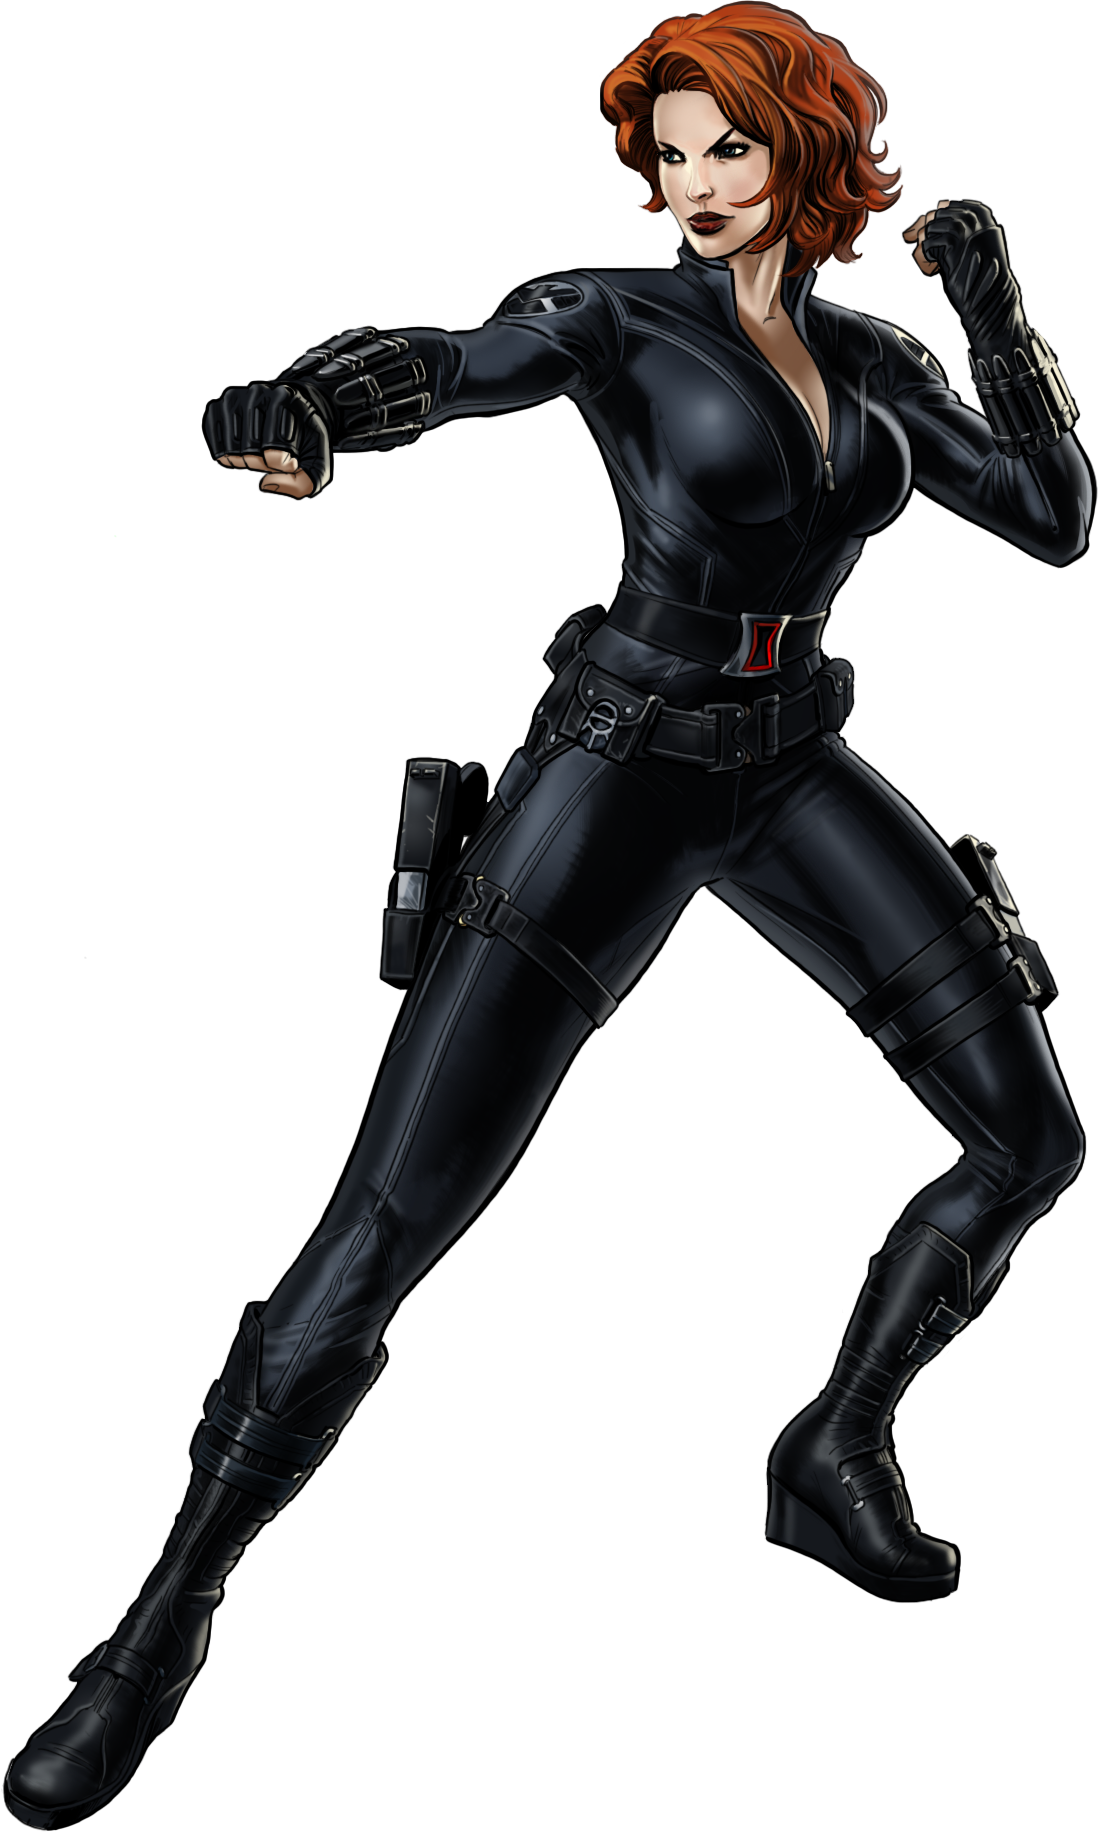 Natalia Alianovna Natasha Romanoff better known as Black Widow is one of the most talented spies and assassins in the entire world and a founding member of